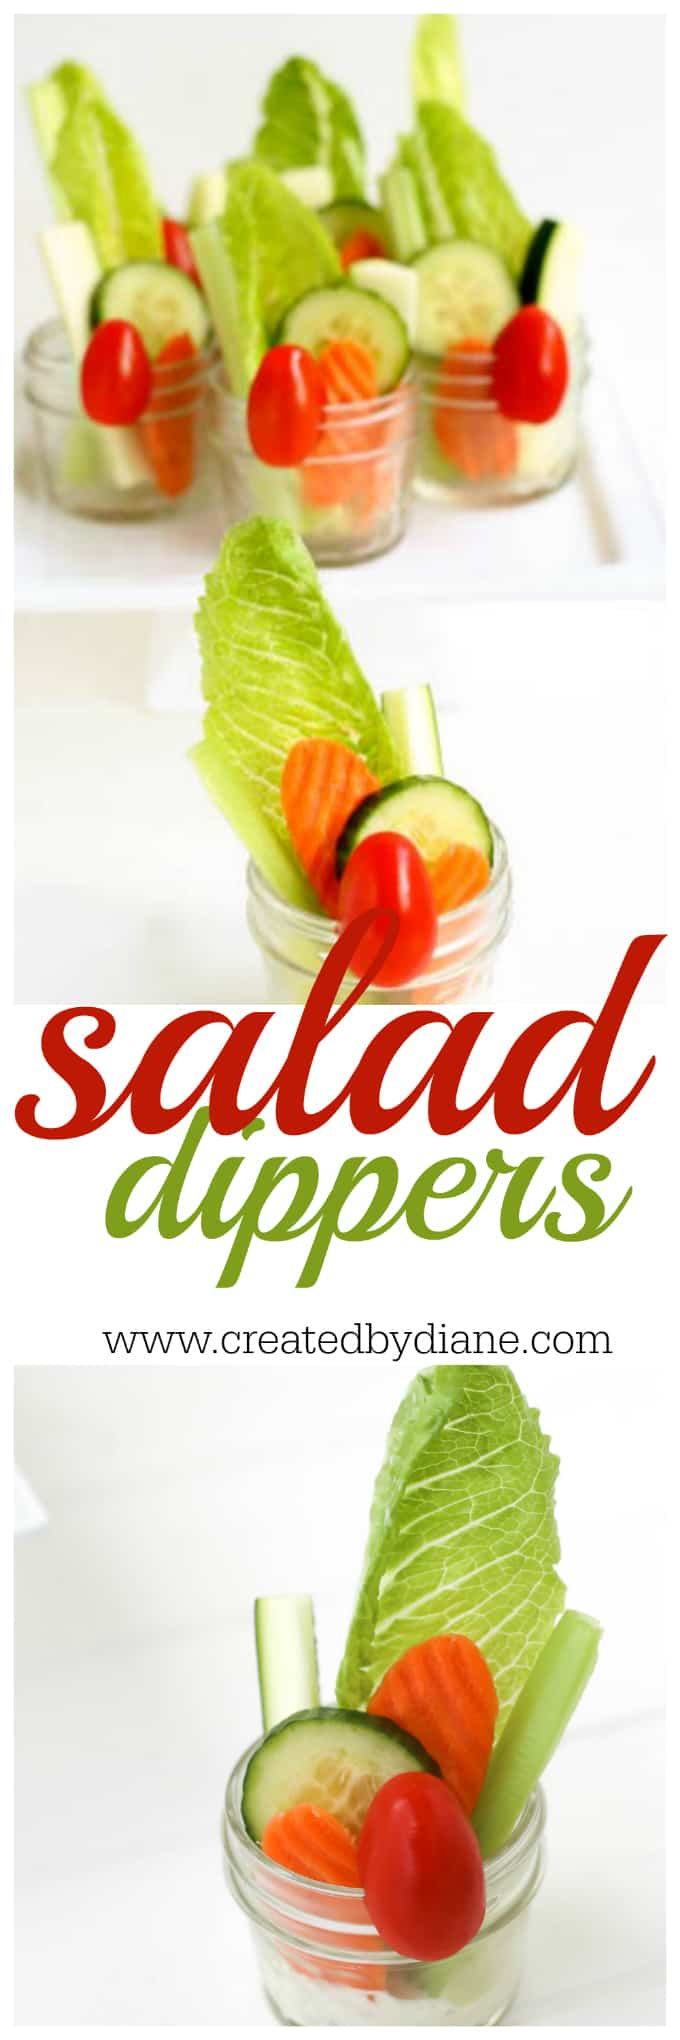 salad dippers , individual salad in a cup great for parties! www.createdbydiane.com